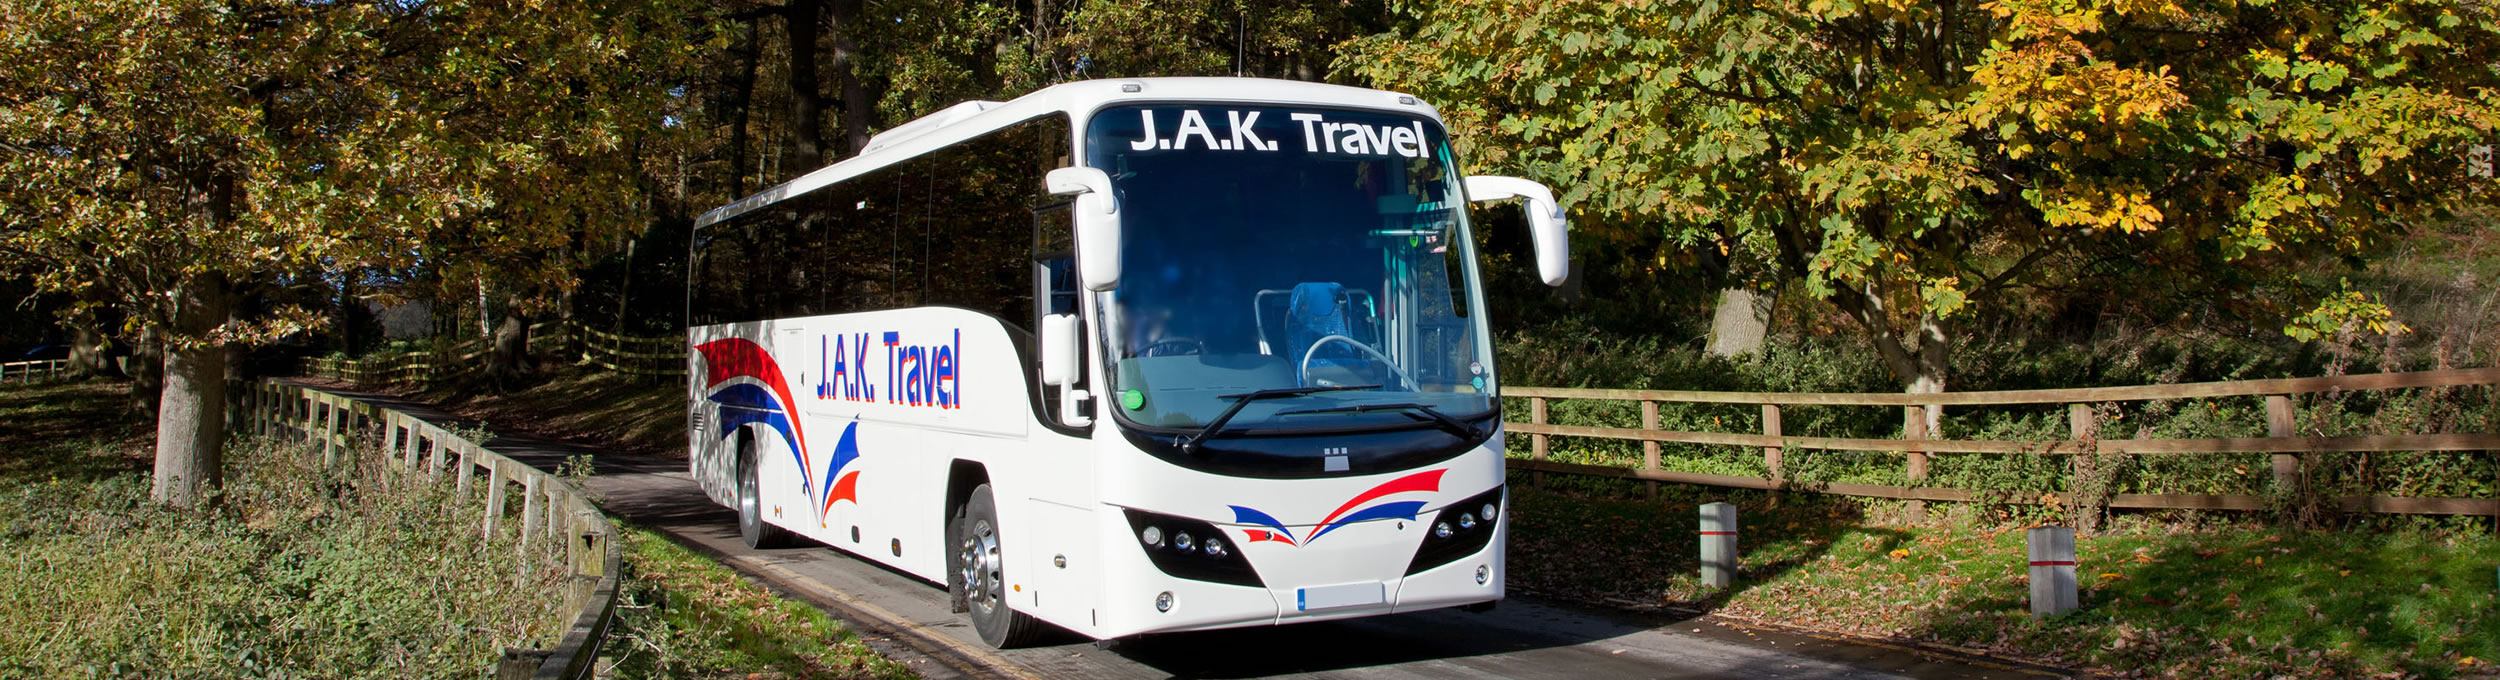 JAK Coach Holidays from Bradford West Yorkshire